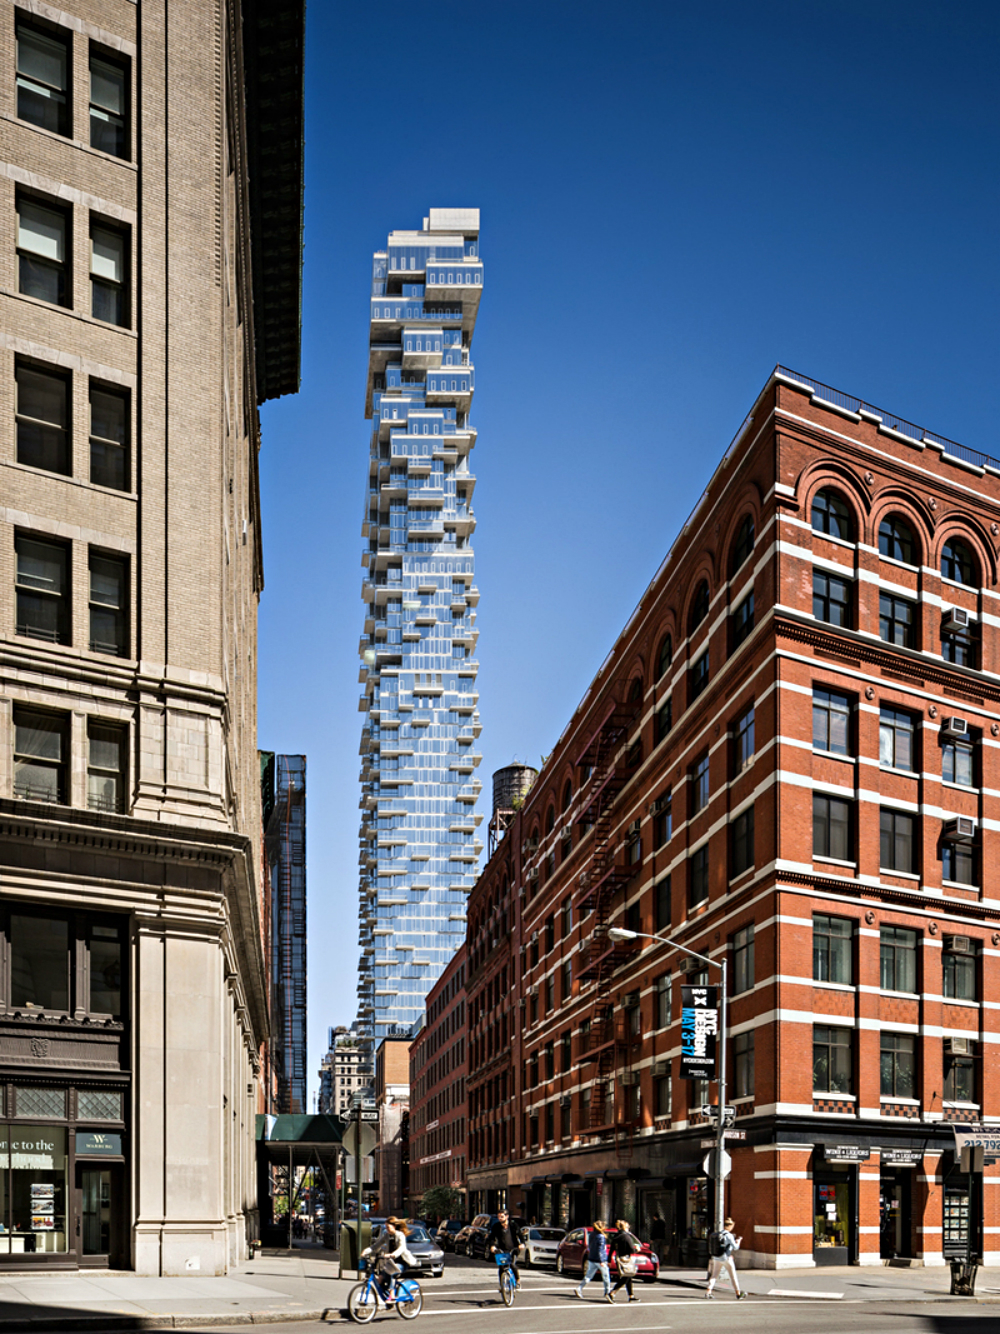 herzog & de meuron designs Colossal Jenga Tower in New York City herzog & de meuron Herzog & de Meuron designs Colossal Jenga Tower in New York City Herzog de Meuron designs Colossal Jenga Tower in New York City